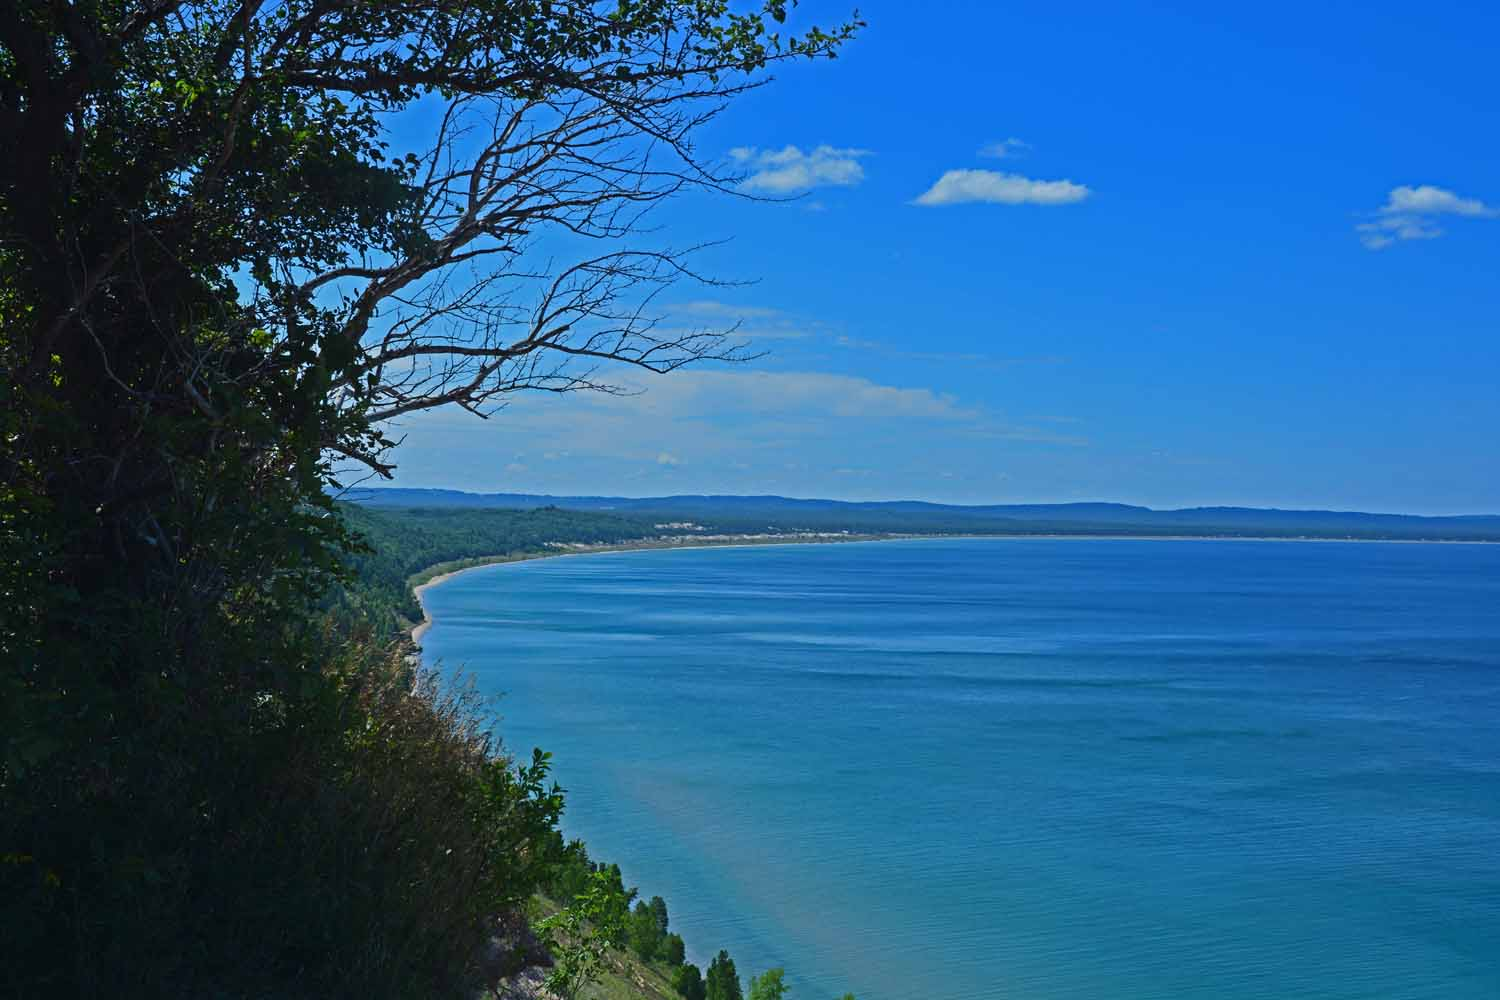 It is easy to find great views of Lake Michigan...much bluer than the Gulf of Mexico